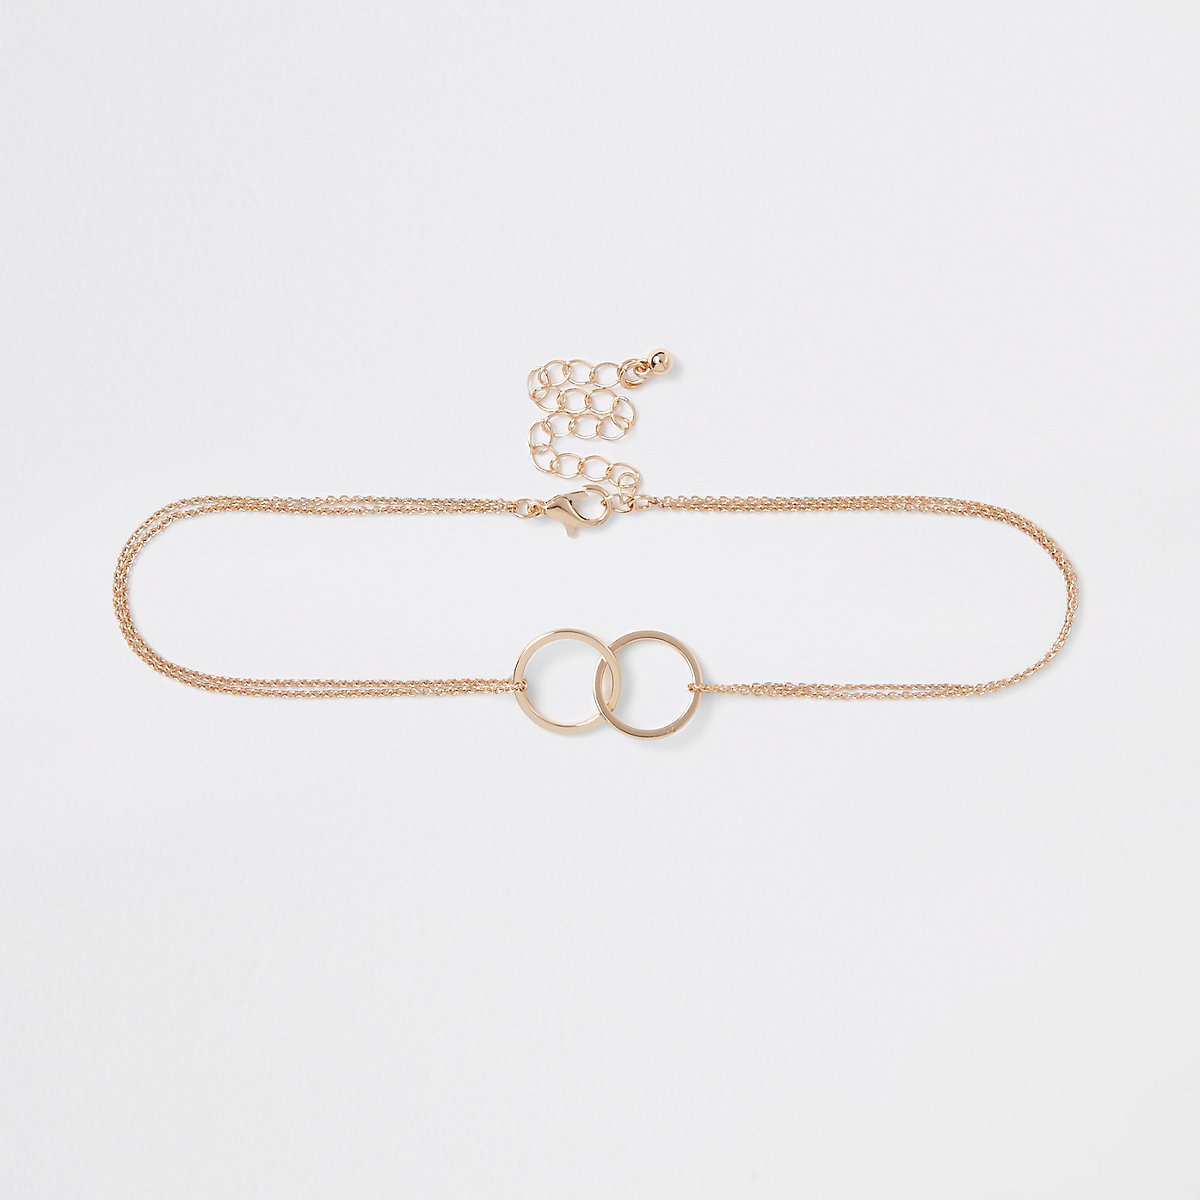 Gold color chain interlink circle choker